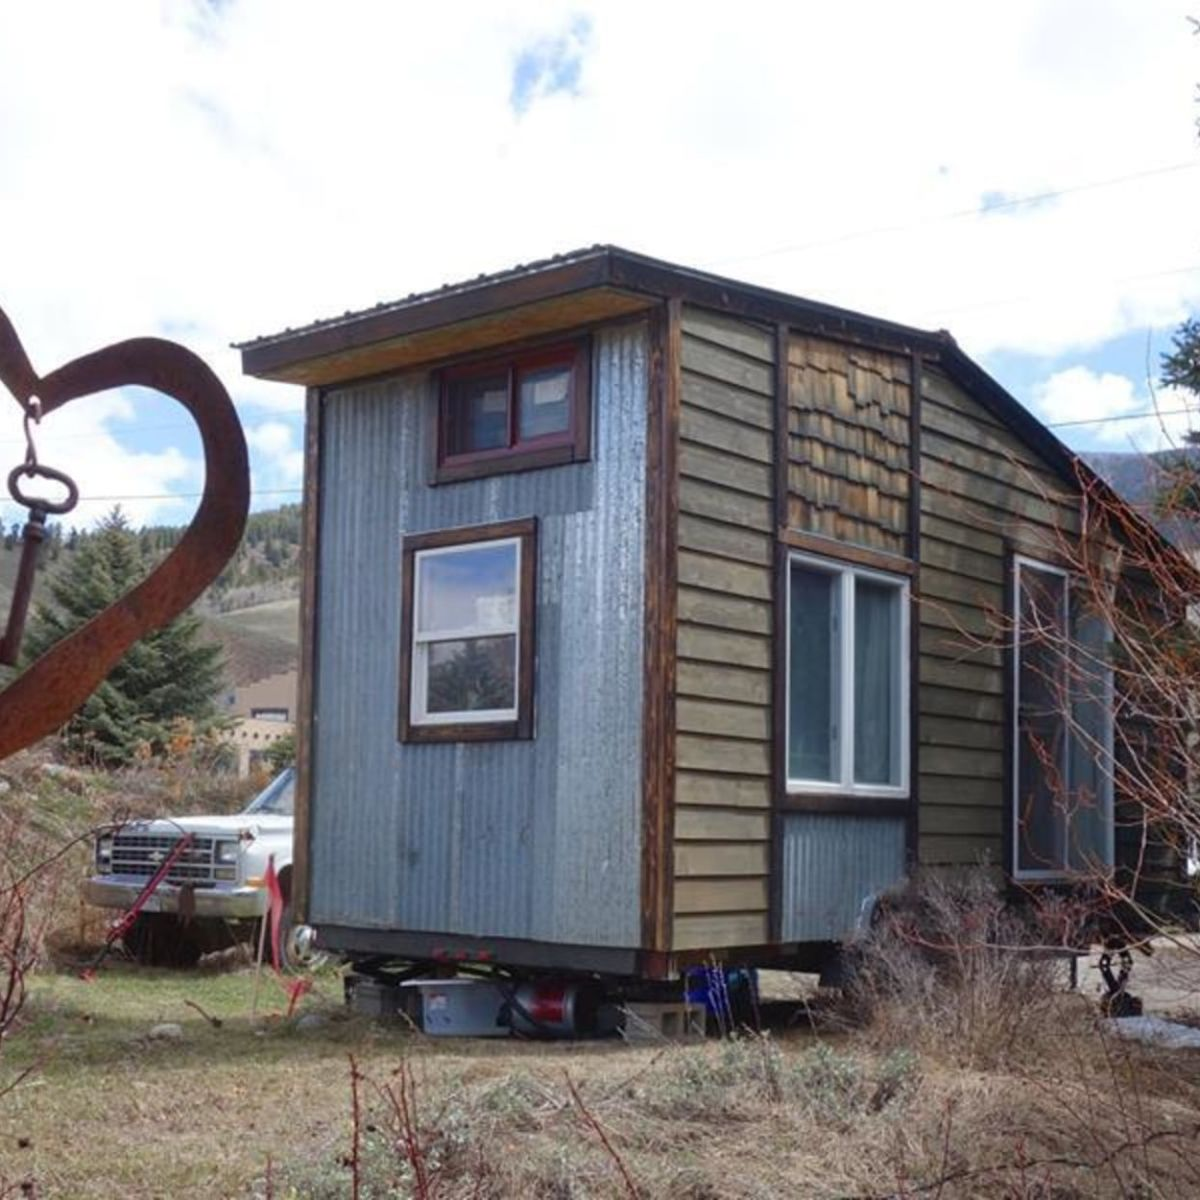 20 x 8 ft minimalist tiny house on trailer